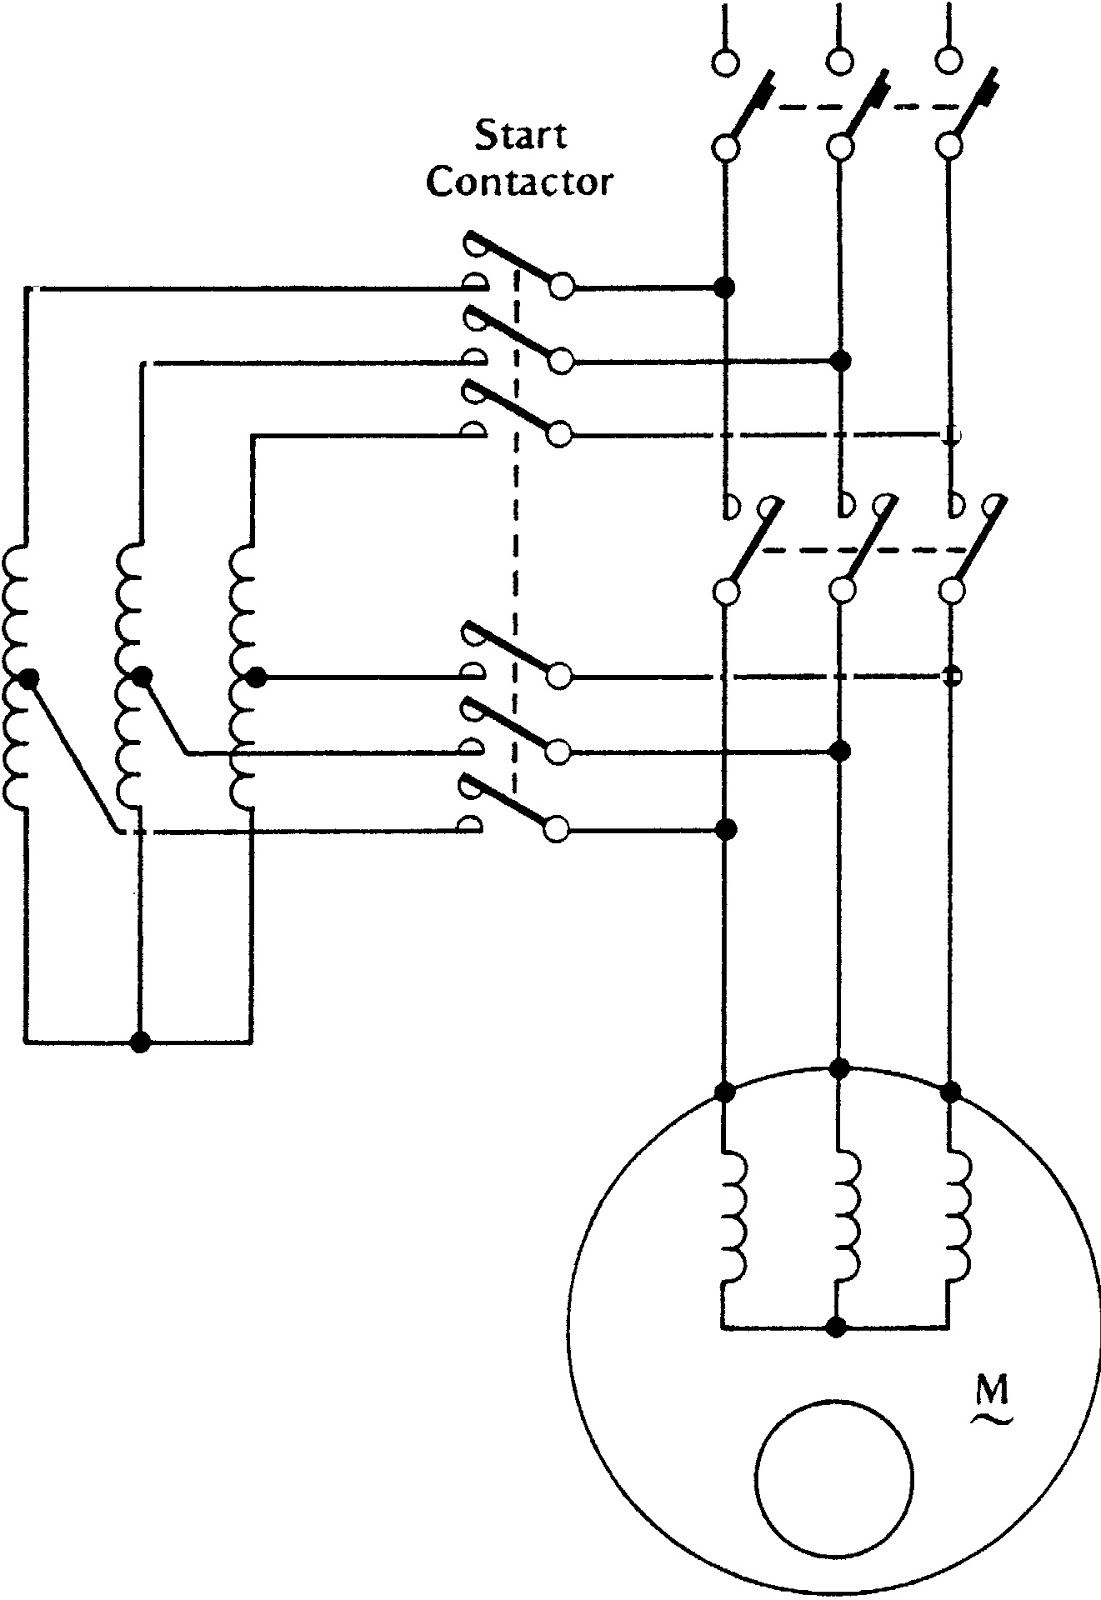 Connection Diagram Of Autotransformer Starter